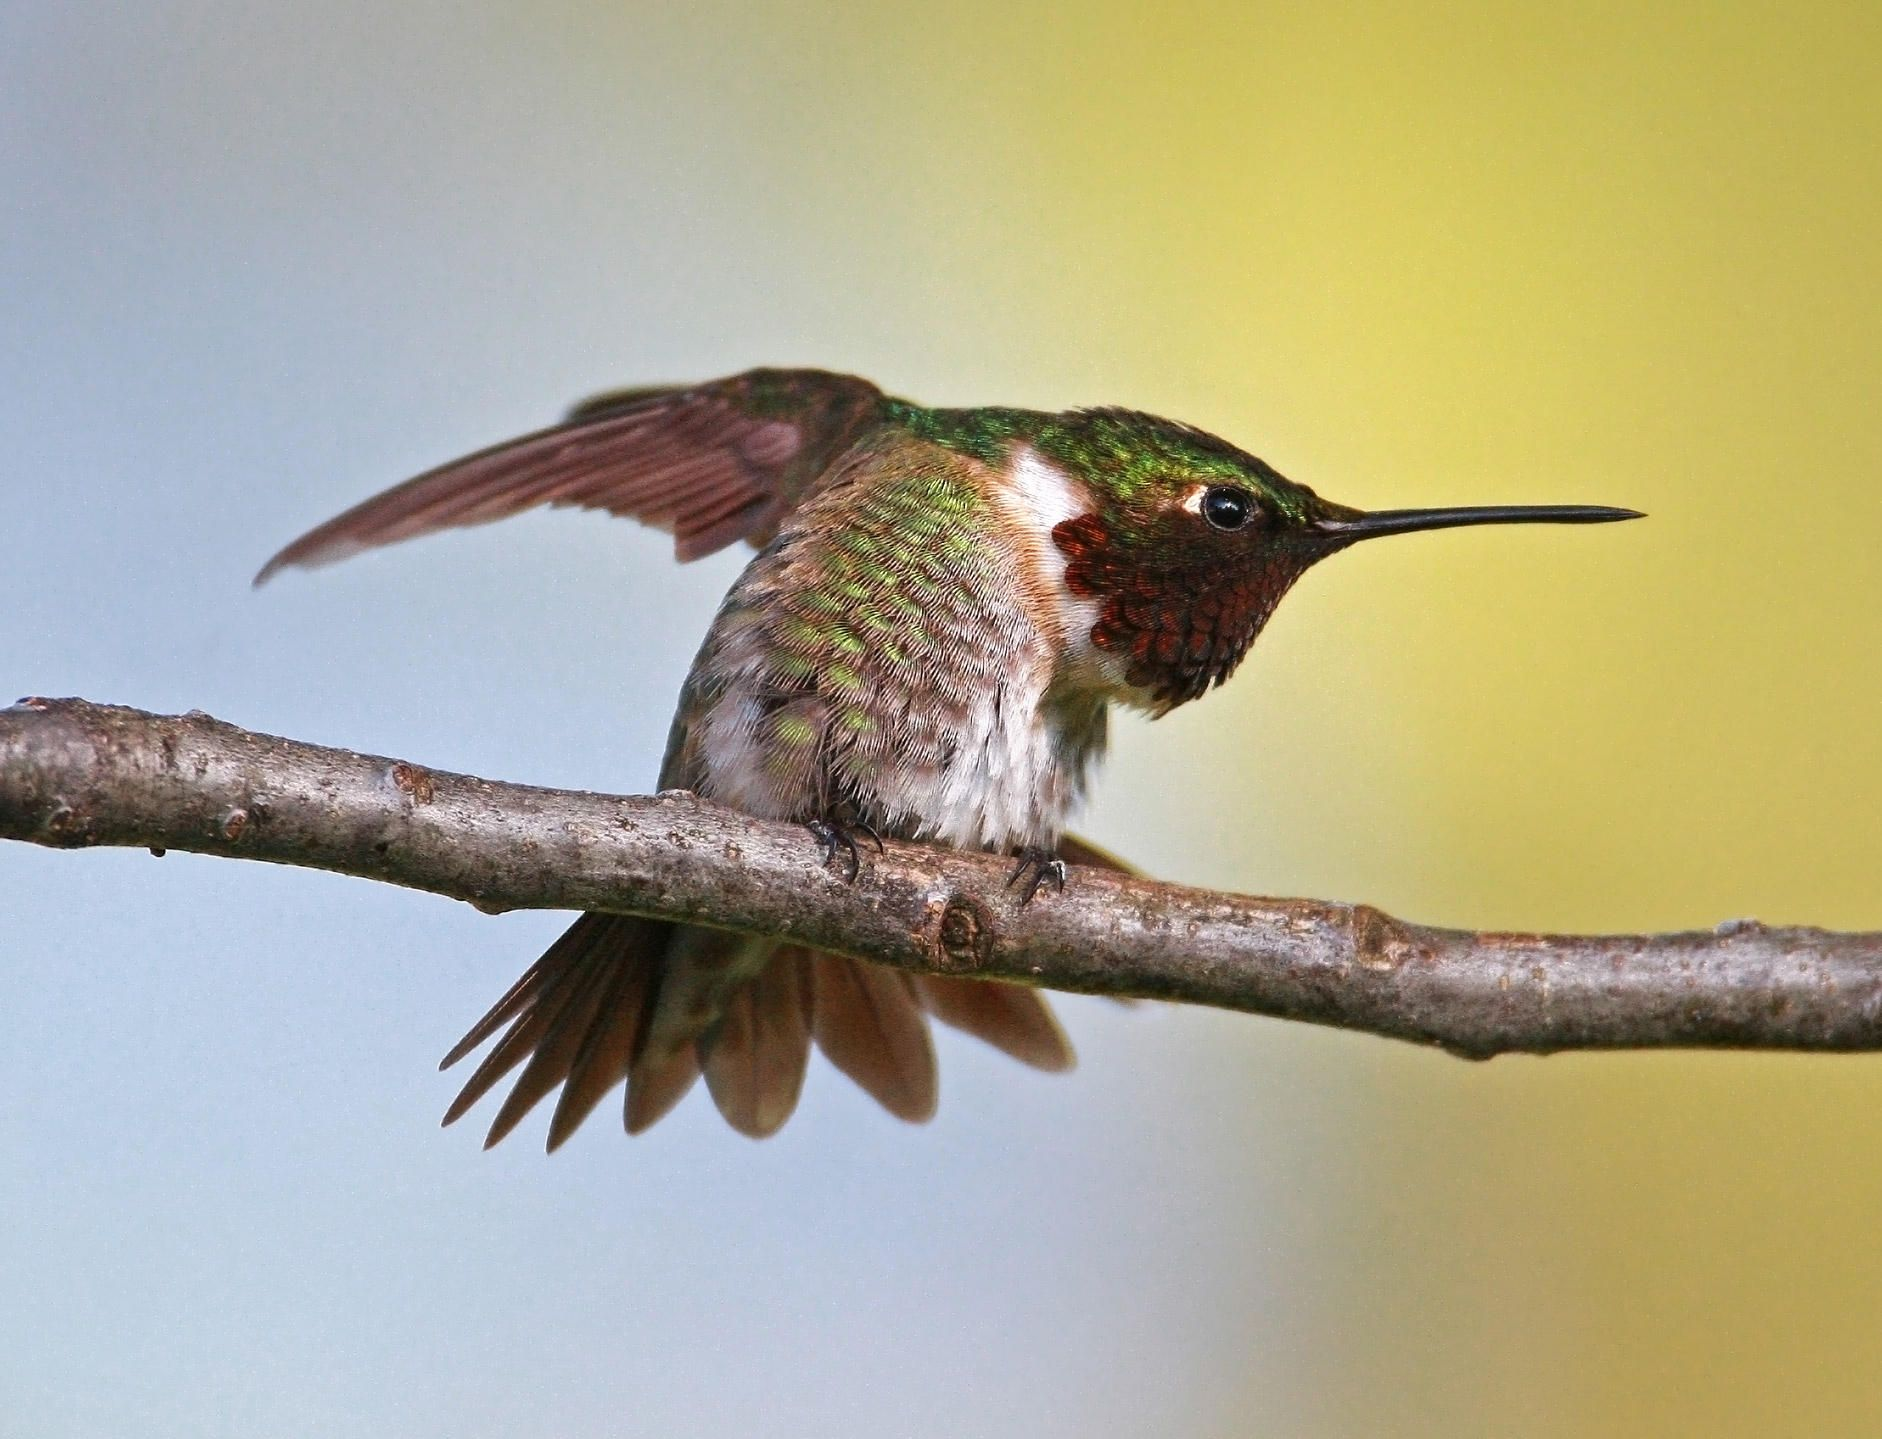 Hundreds of kinds of hummingbirds nest in the American